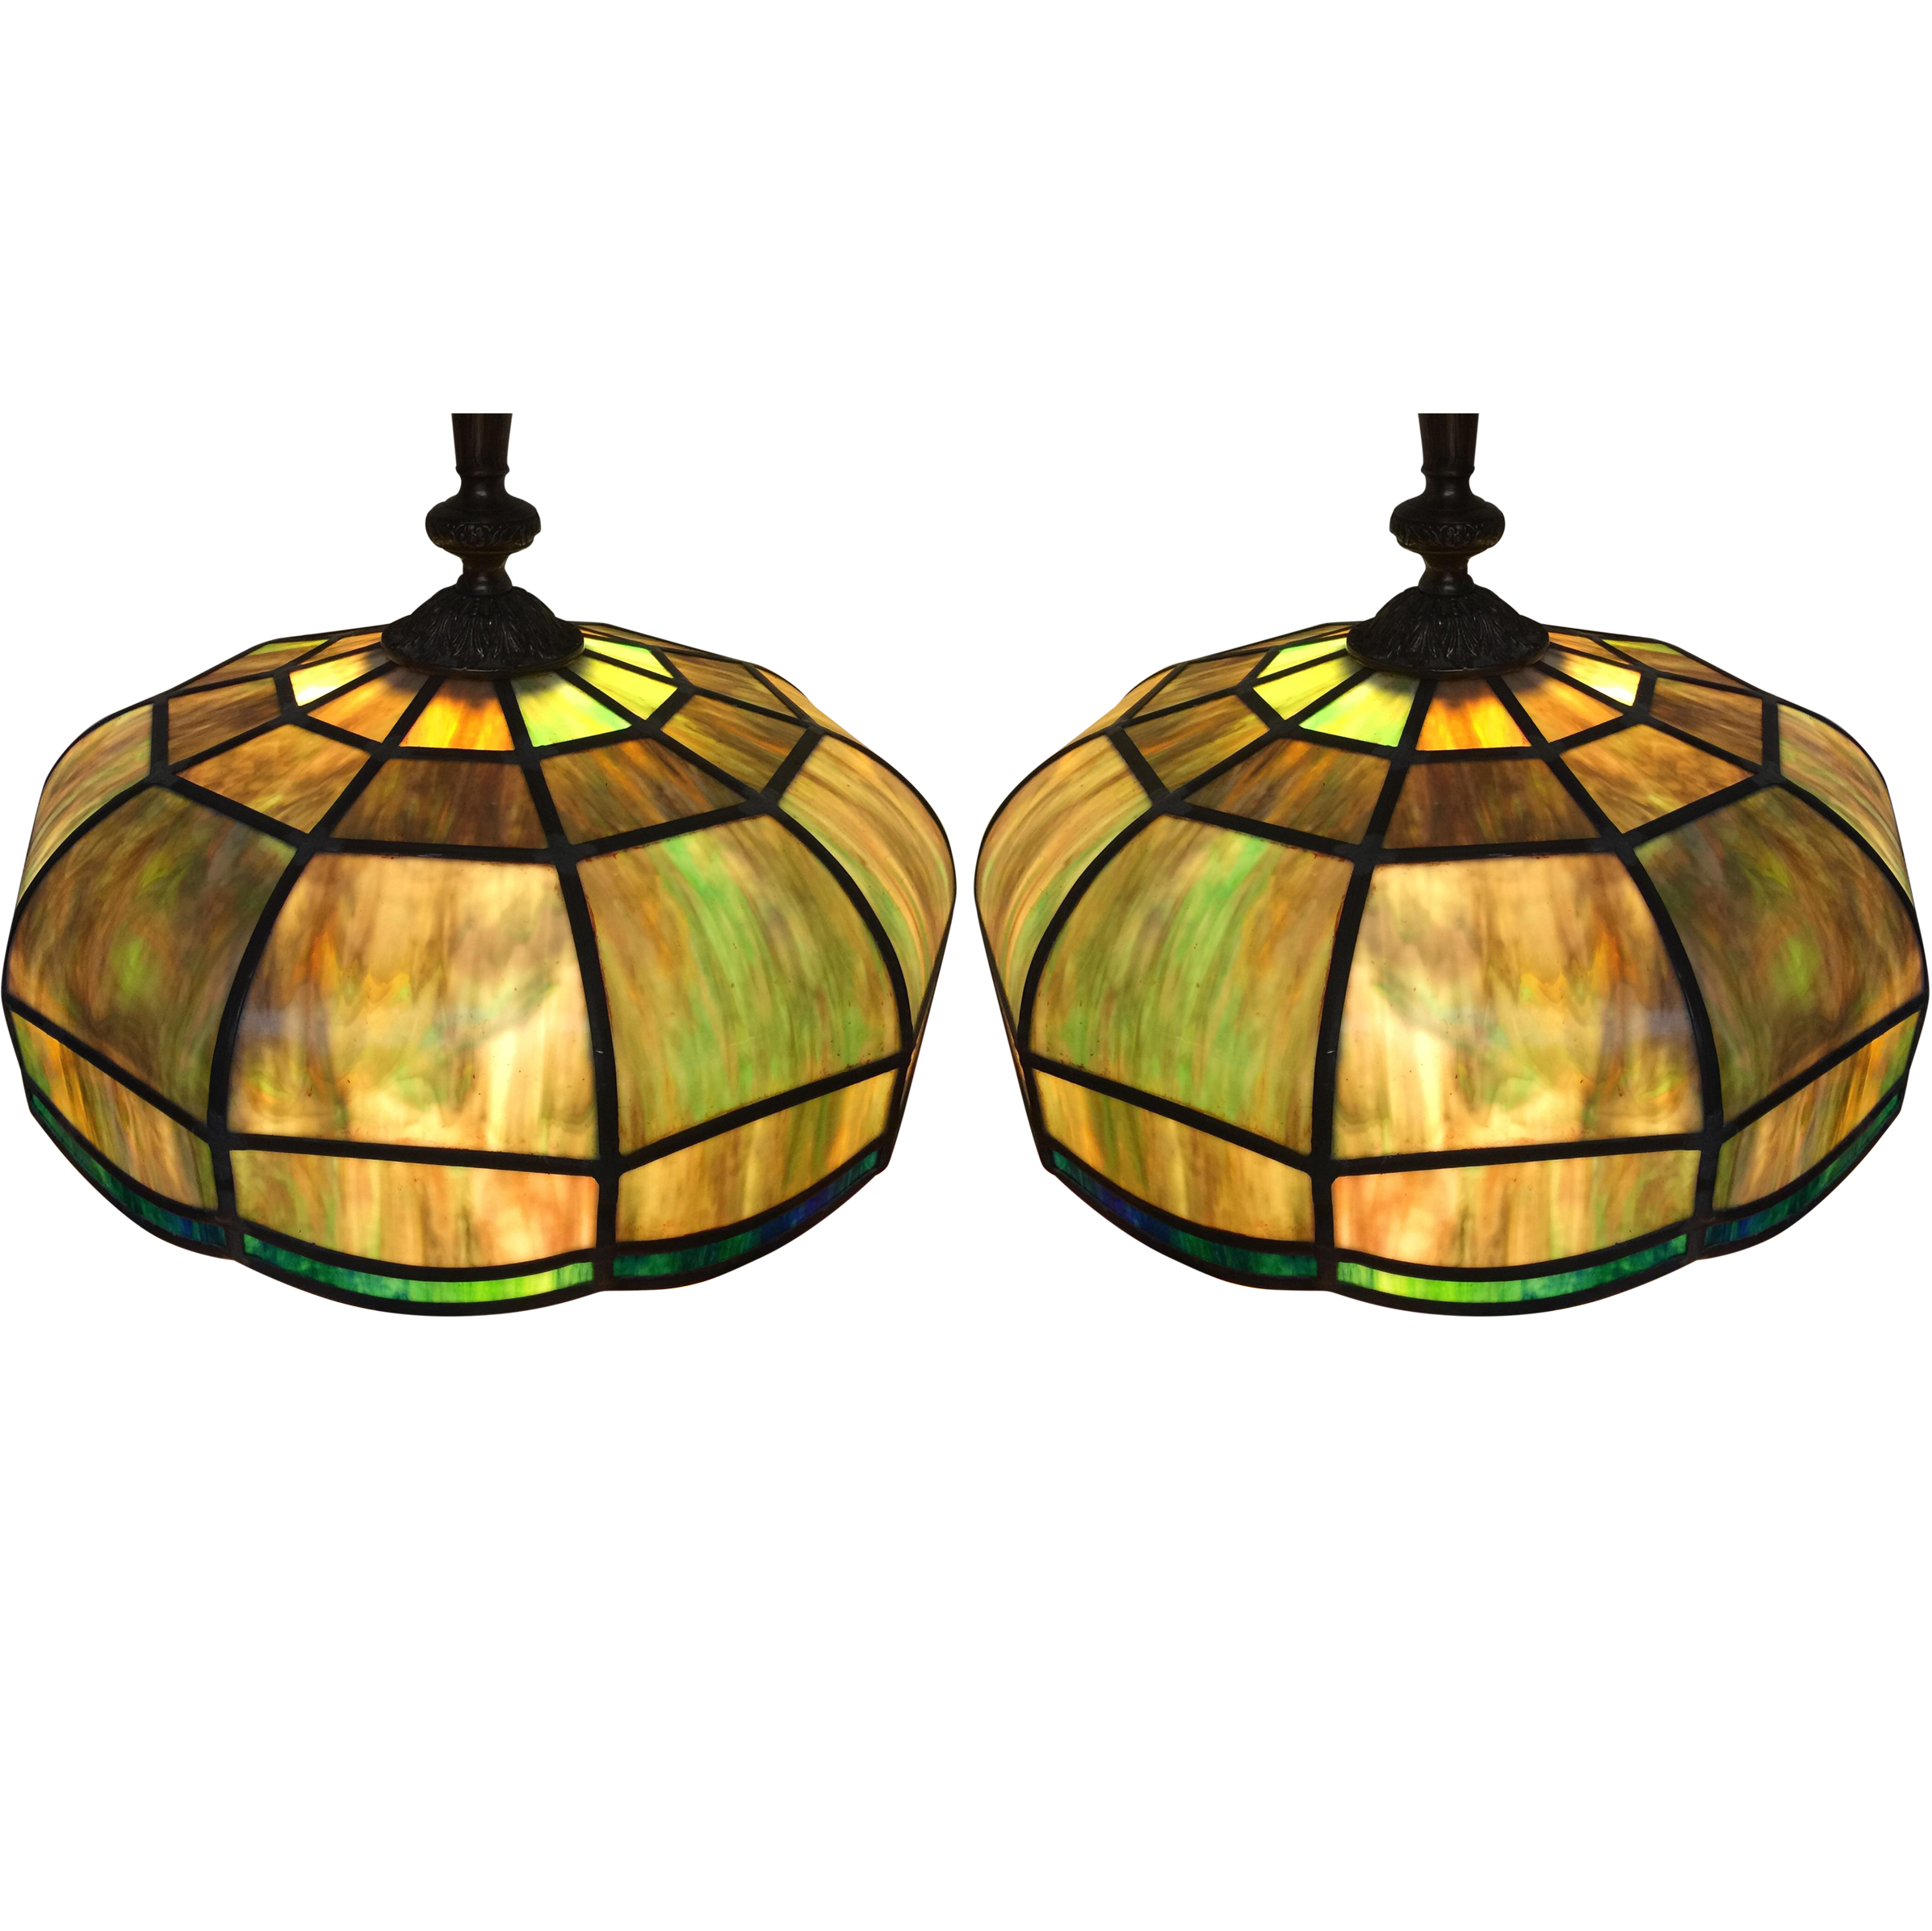 Stained glass light fixtures